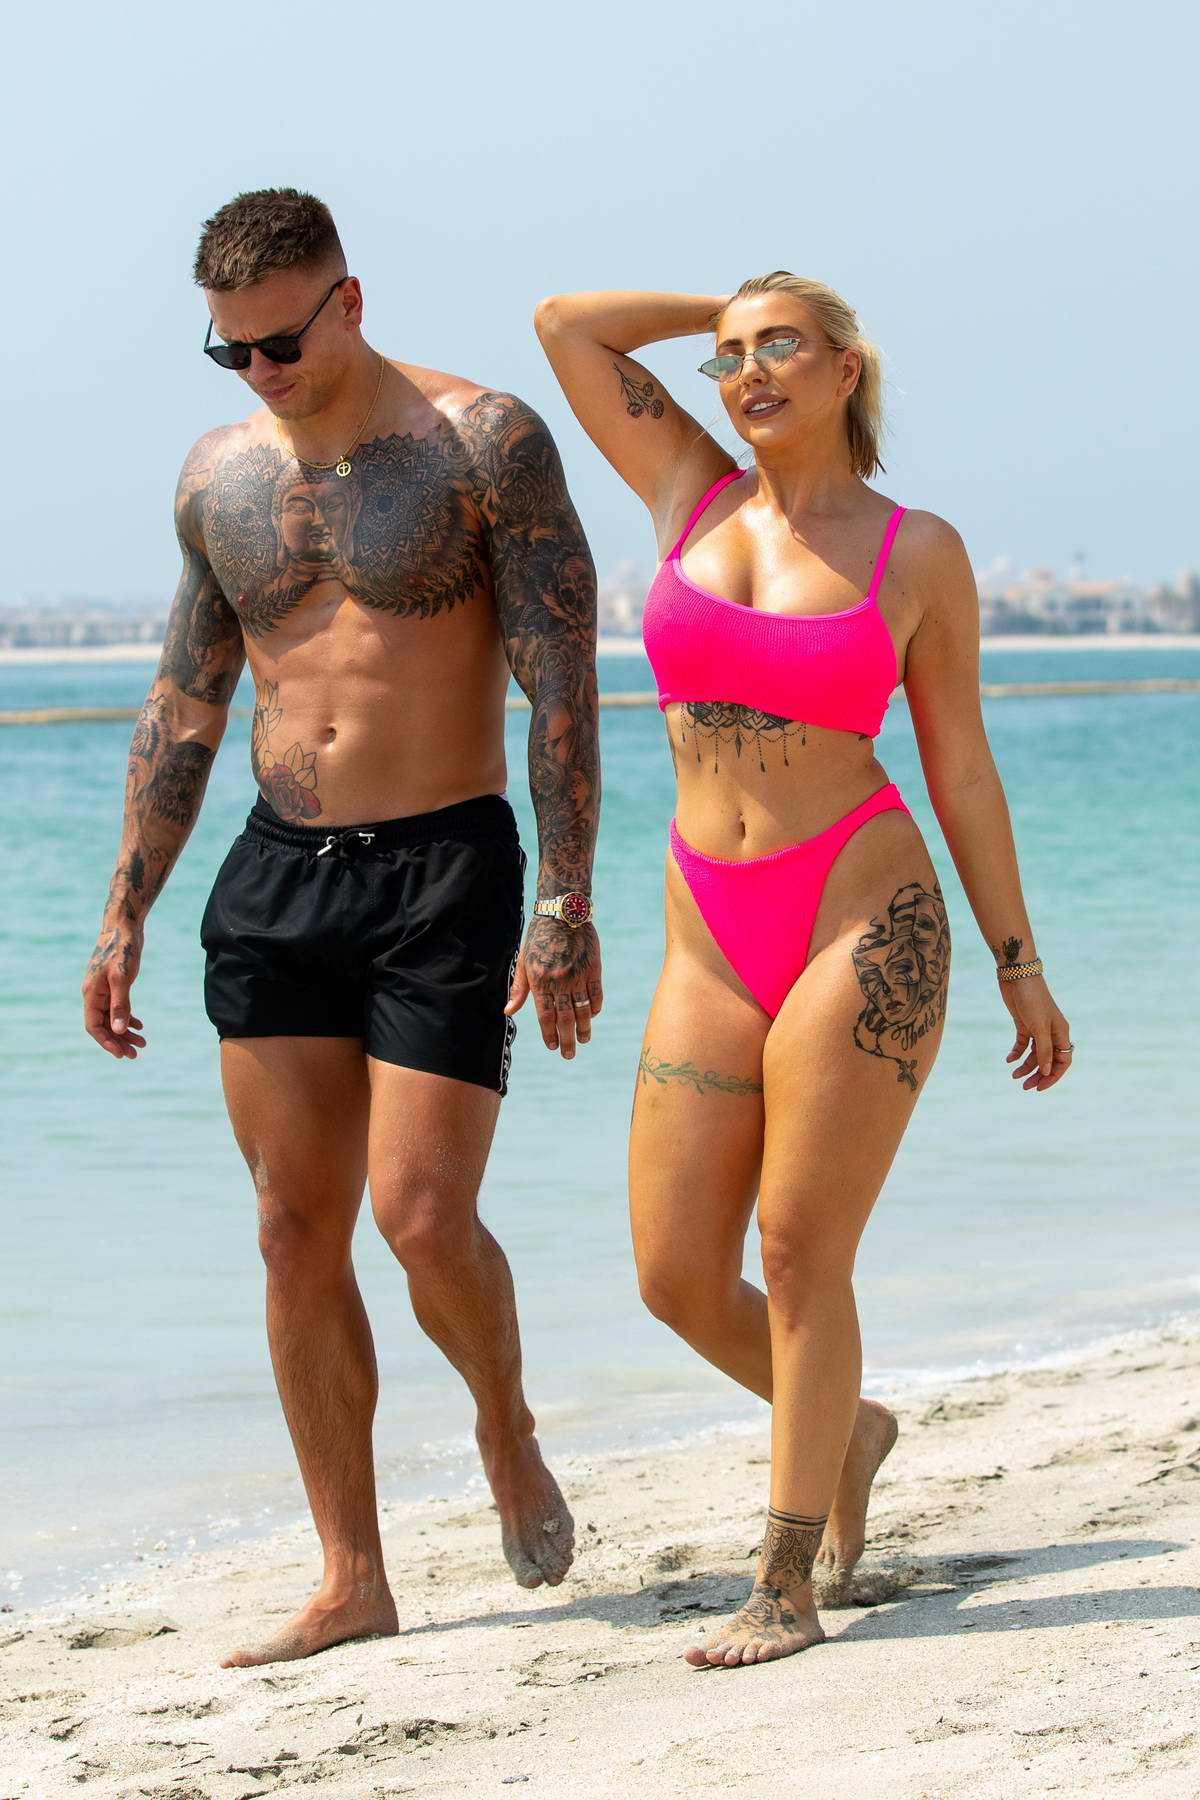 Olivia Buckland wears a hot pink bikini as she hits the beach with Alex Bowen in Dubai, UAE